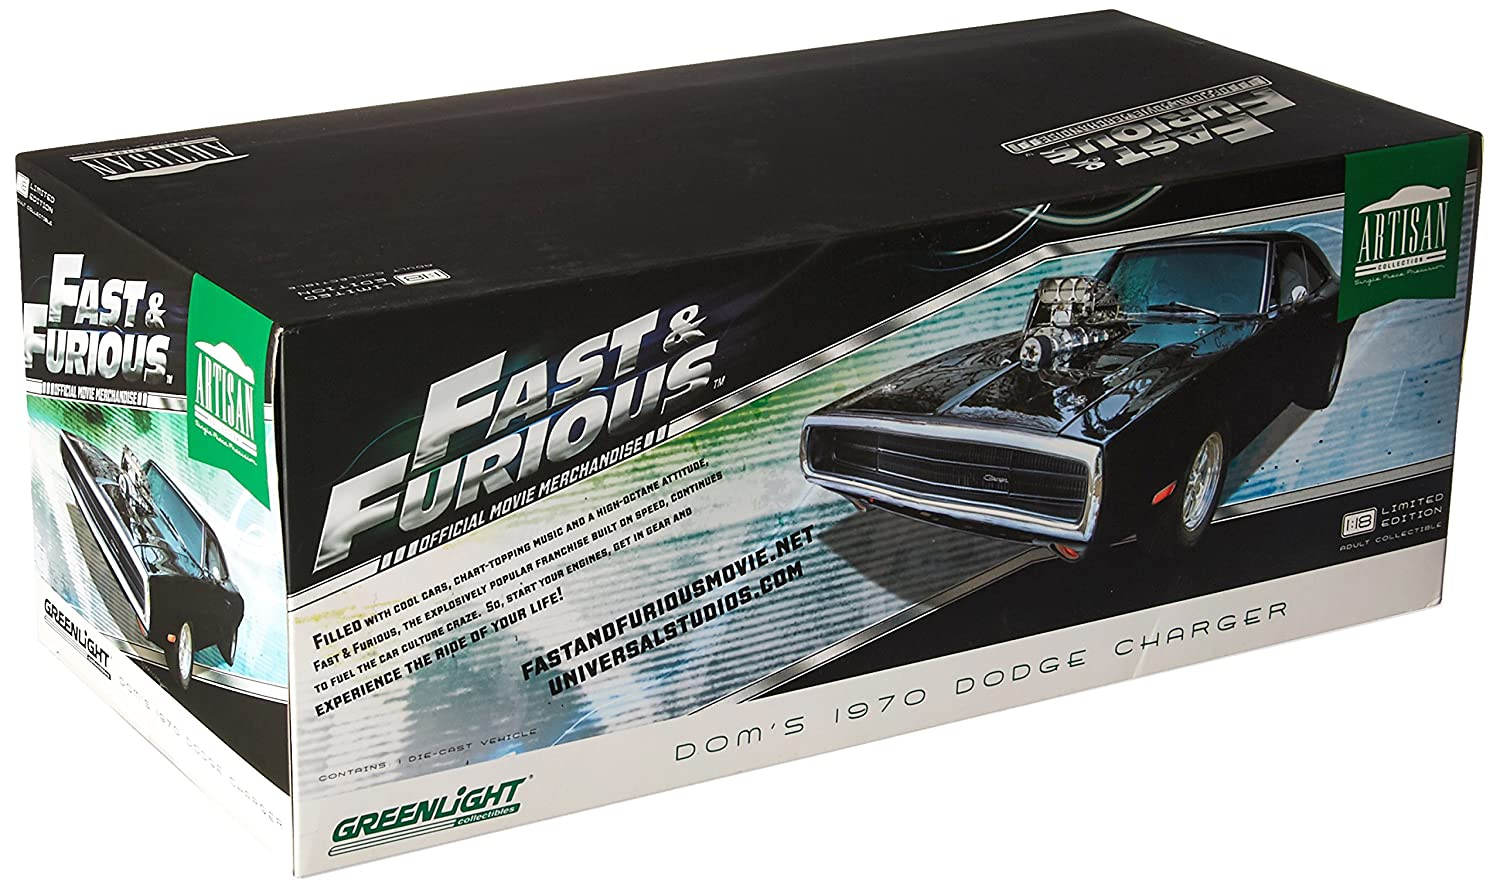 Greenlight Collectibles  –   Modellino Dodge Doms Charger  –   Fast And Furious  –   1970  –   Scala 1/18, 19027, Nero